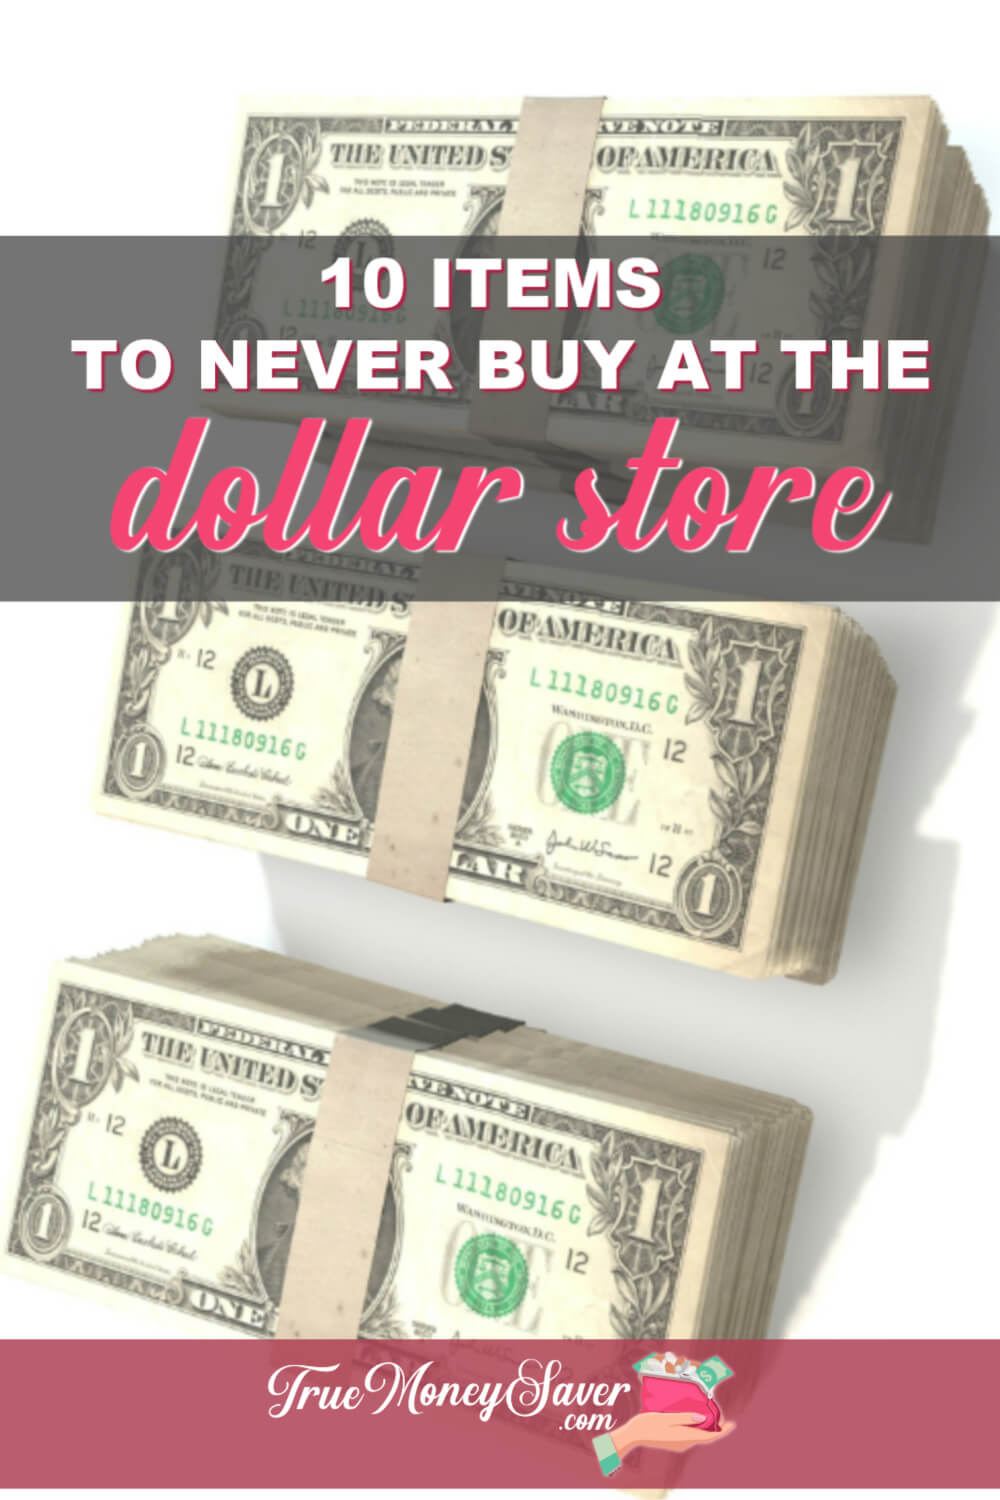 Don\'t be fooled by those dollar stores. There are several dollar deals that you should NEVER buy there! Be an informed consumer with these tips! #truemoneysaver #dollarstore #dollarstorefinds